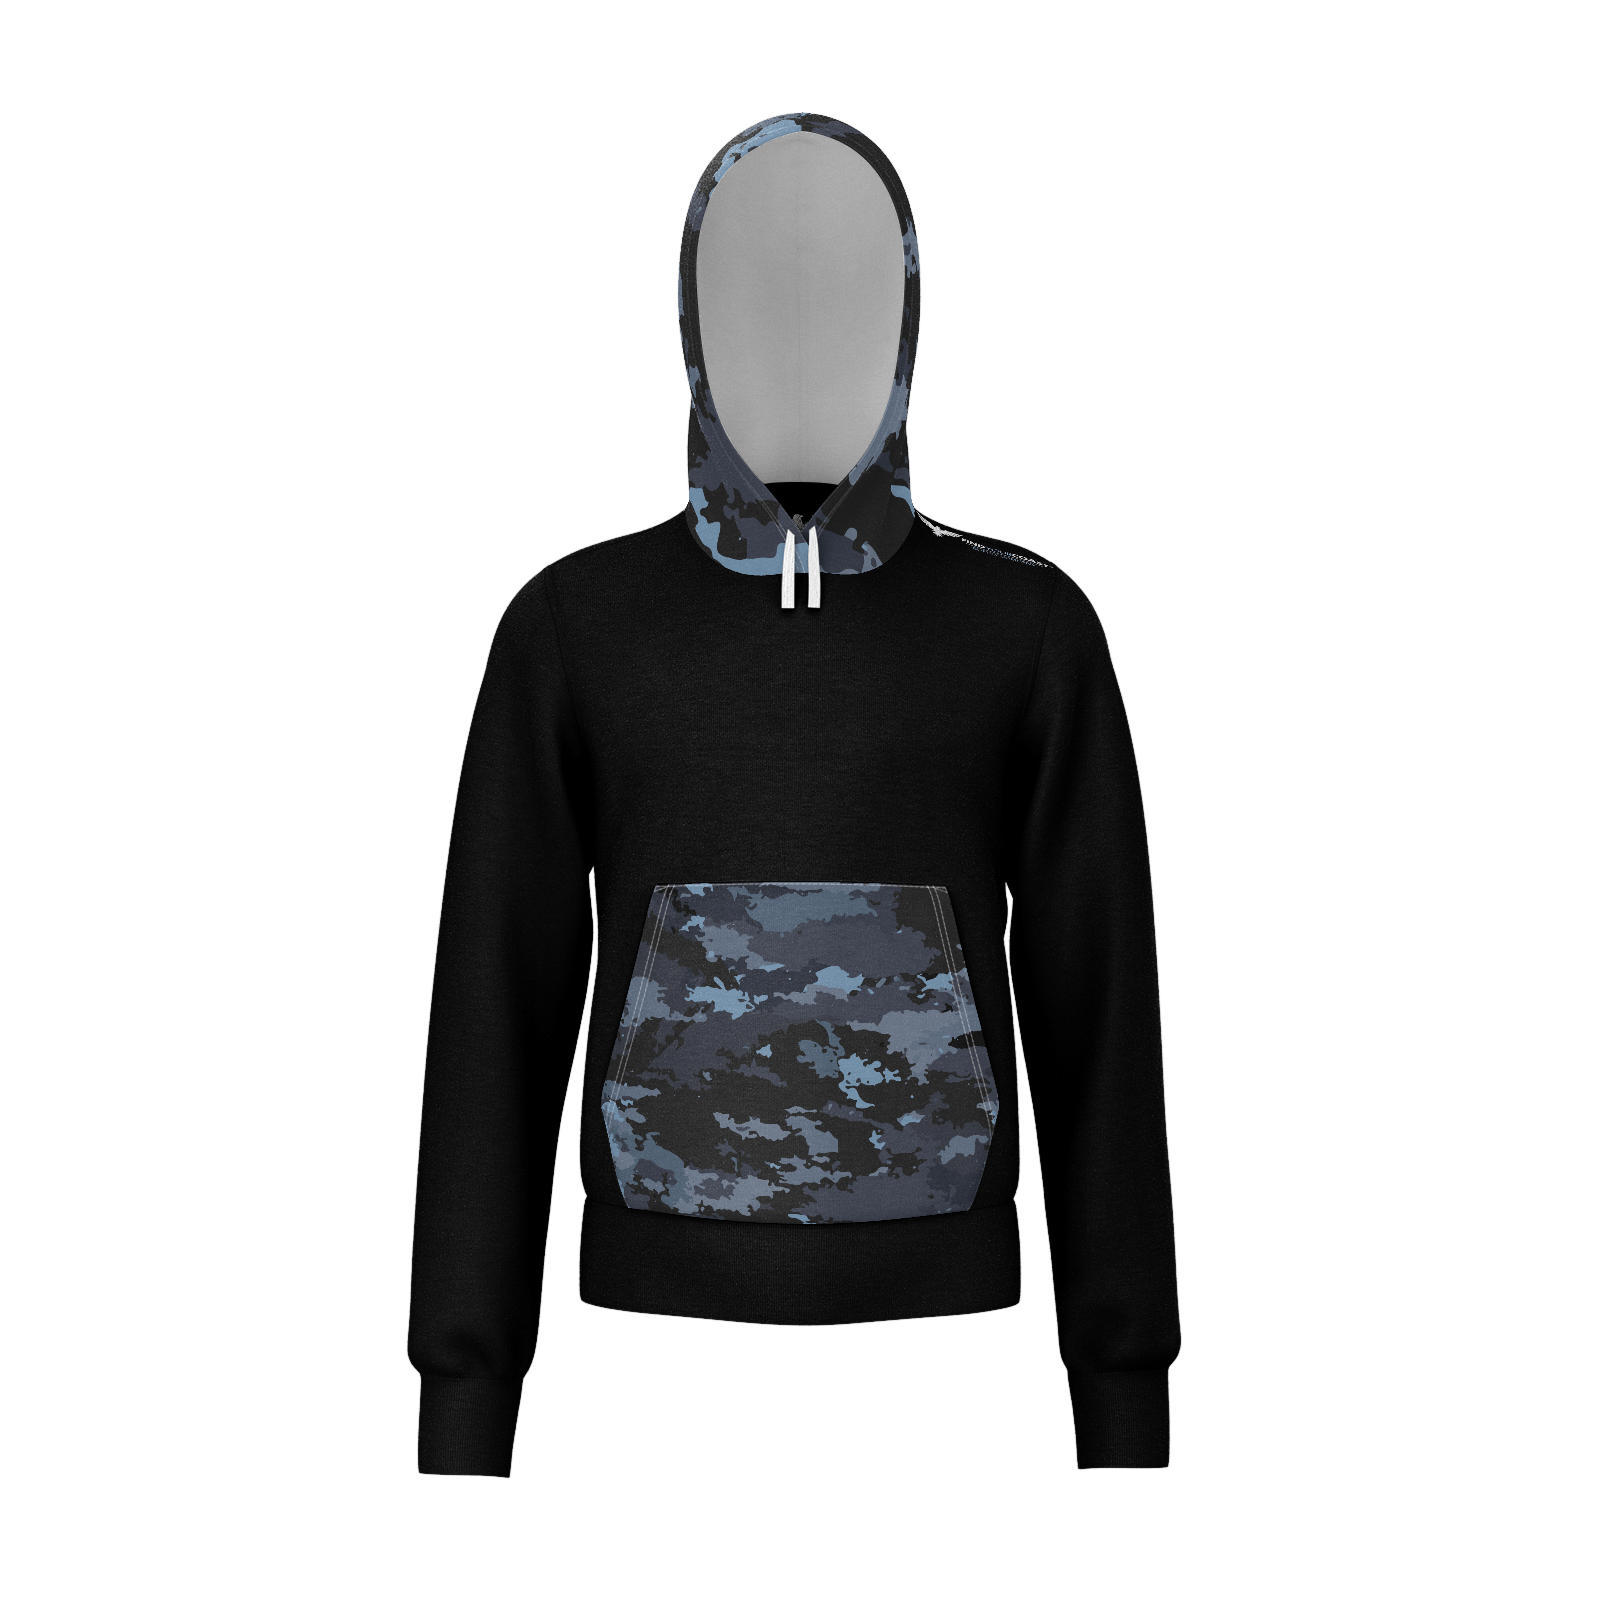 Kids Coast Camo Sustainable Lightweight Pullover Sweatshirt Hoodie - Find Your Coast Supply Co.